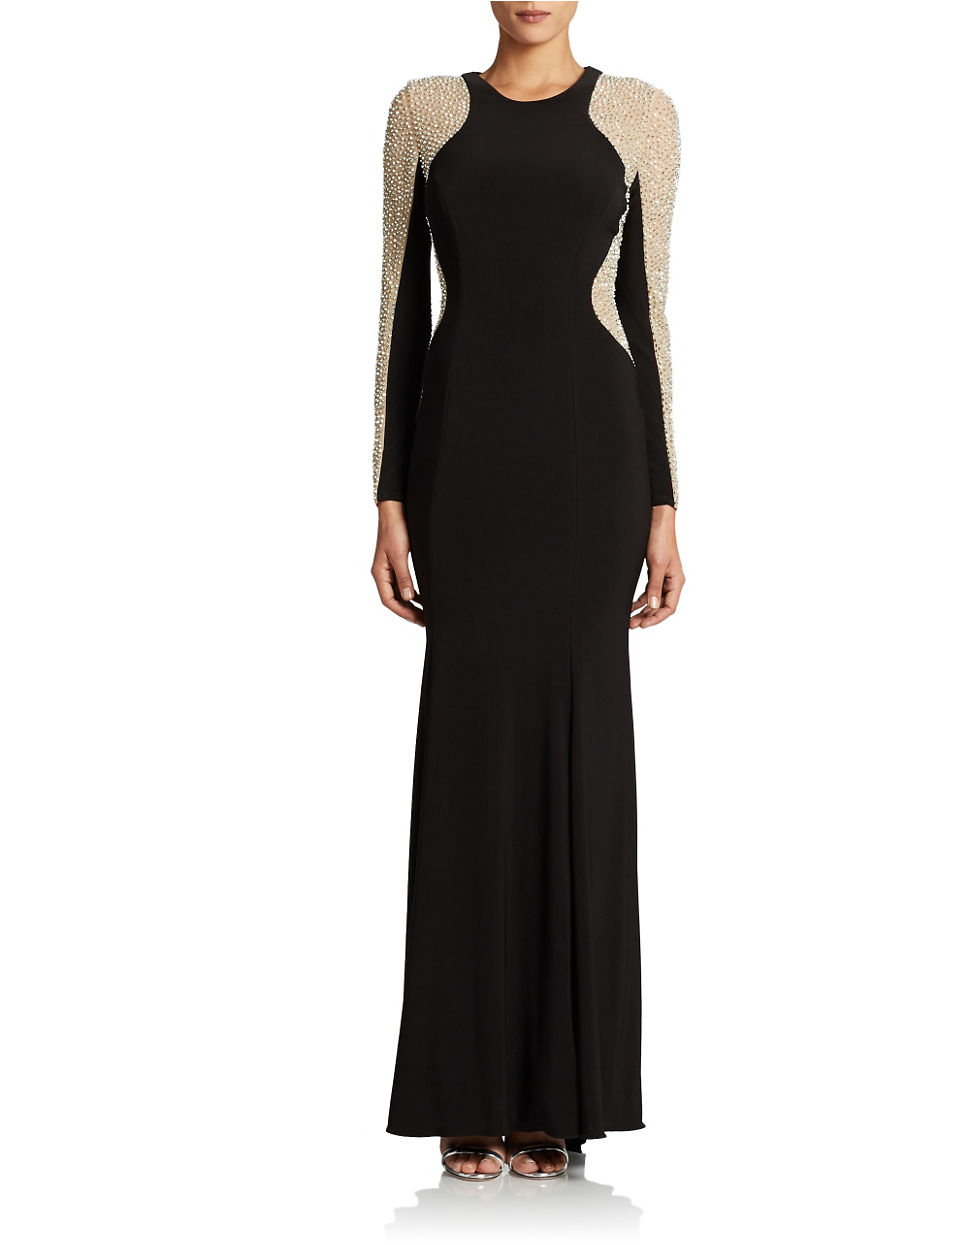 Xscape Plus Long Sleeved Beaded Gown in Black | Lyst: https://www.lyst.com/clothing/xscape-plus-long-sleeved-beaded-gown...